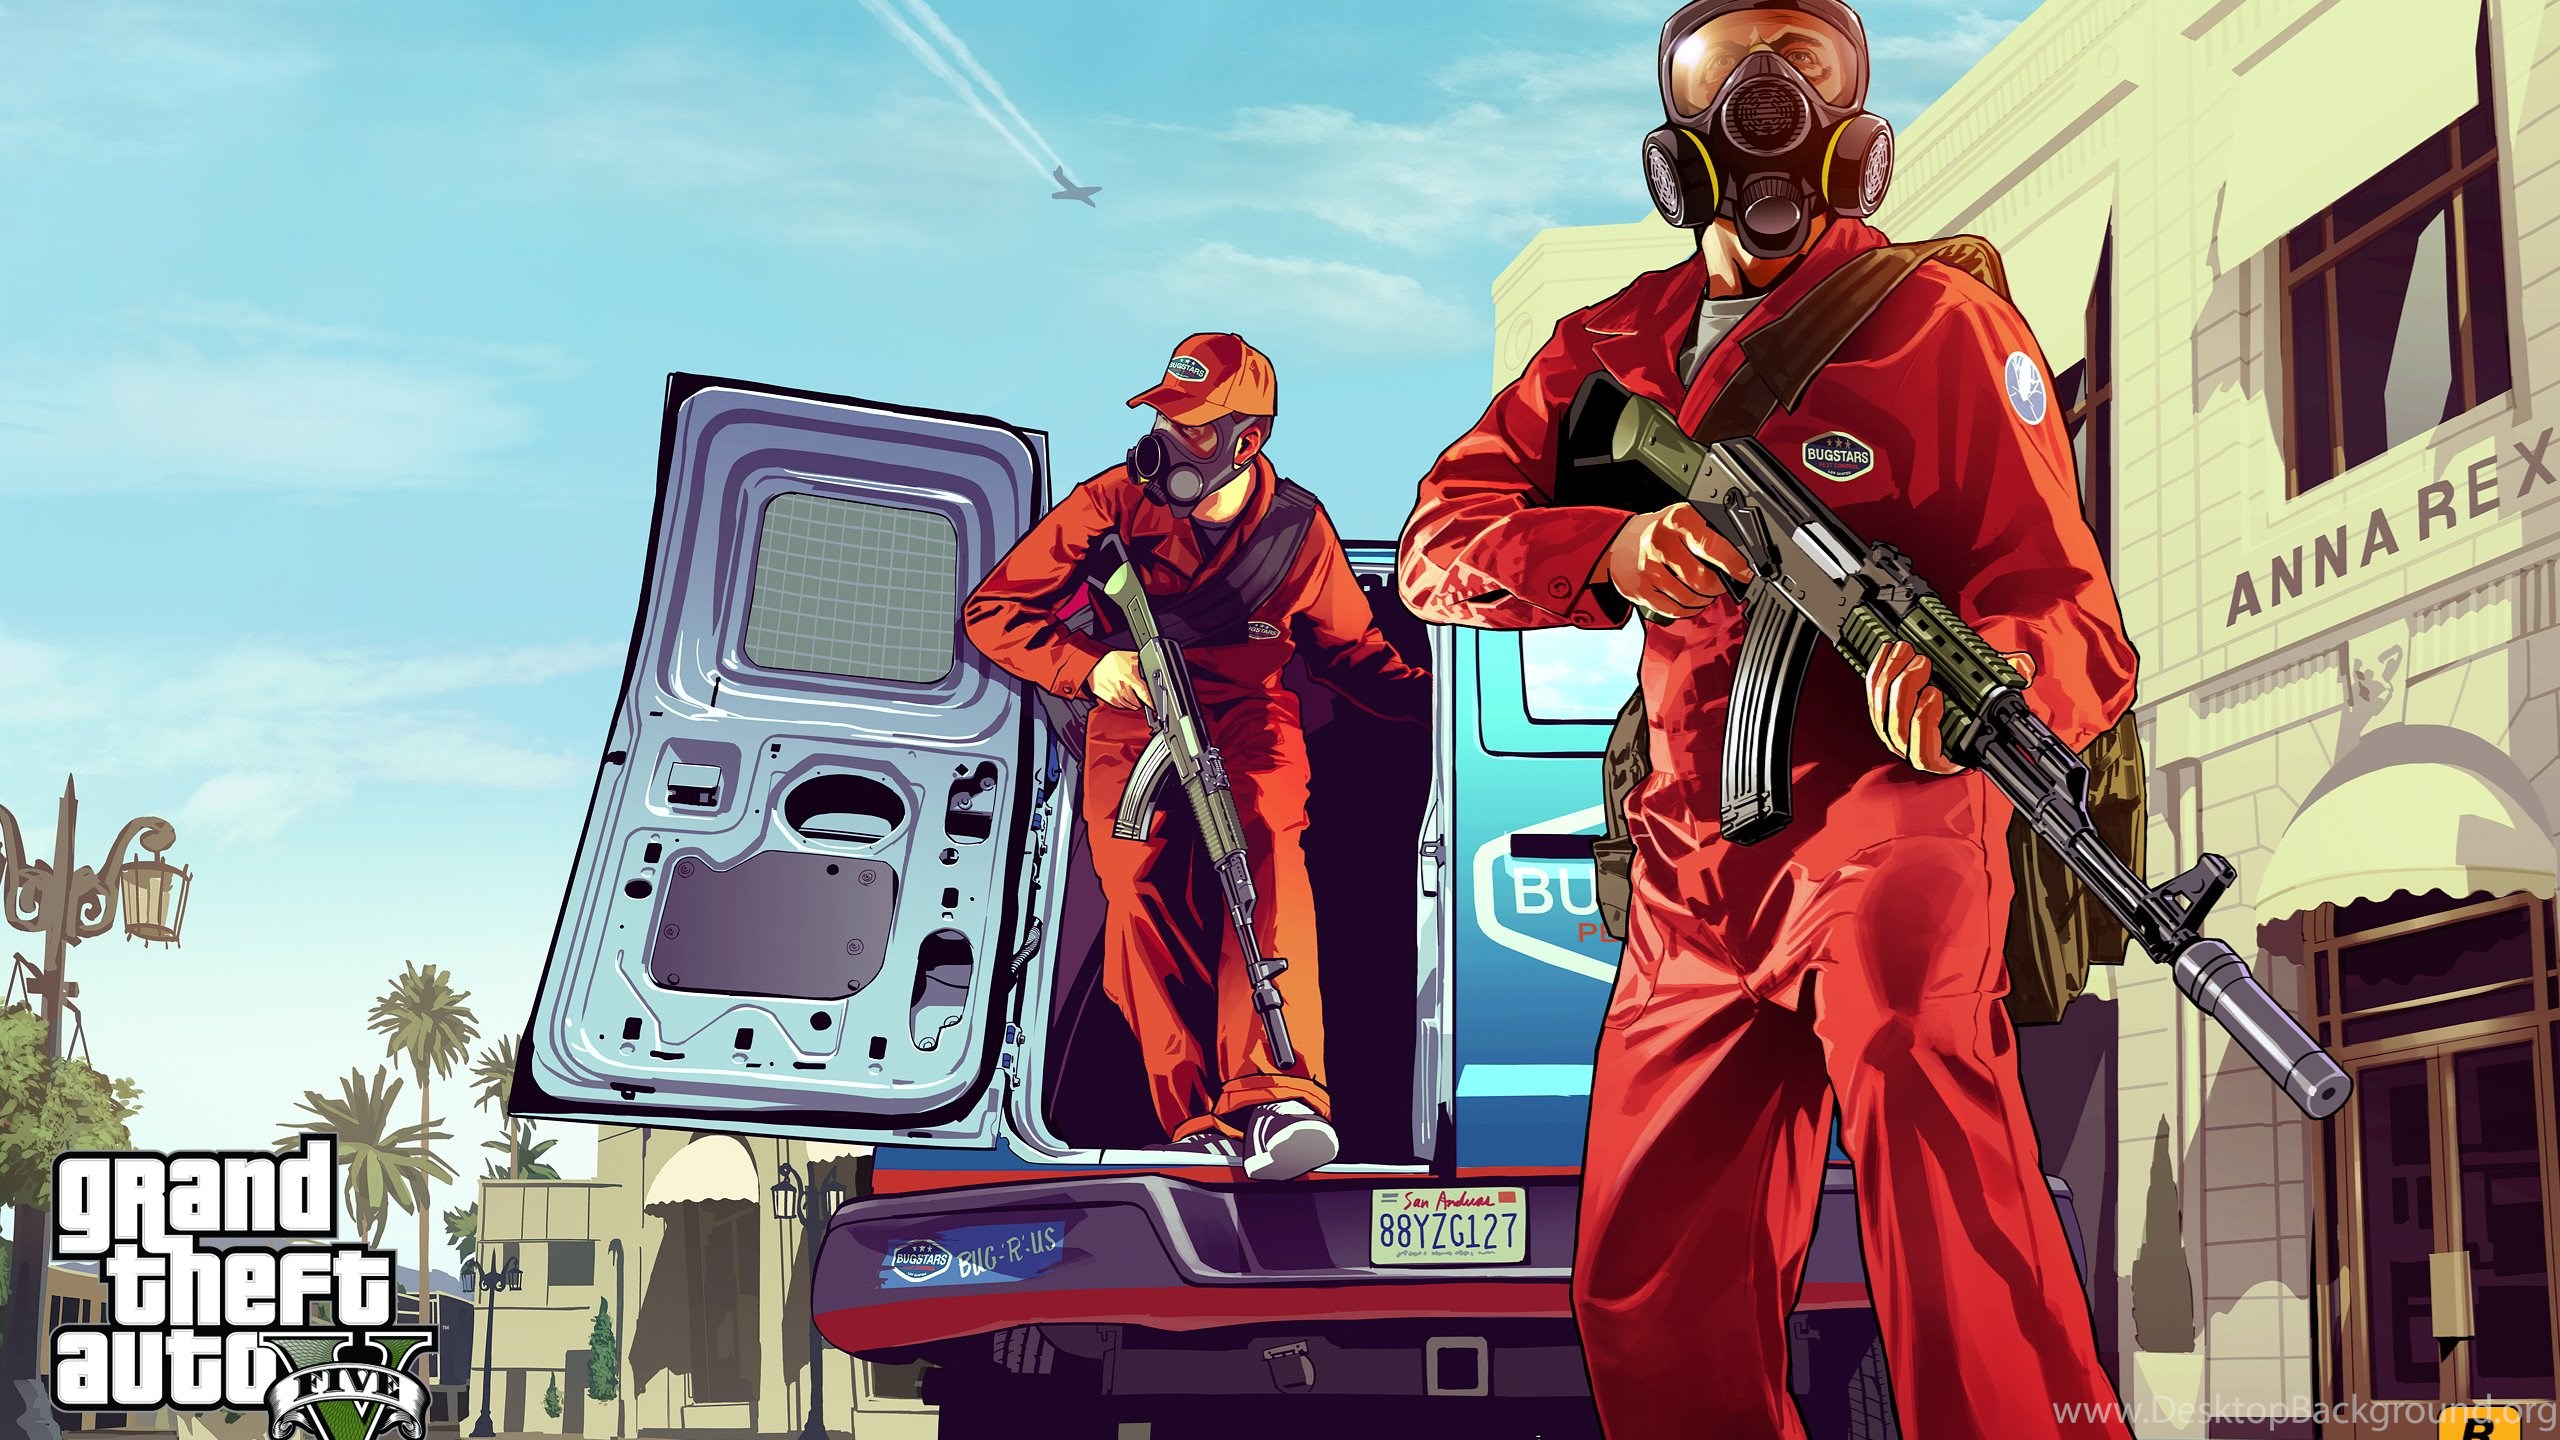 gta 5 wallpapers hd wallpaper backgrounds of your choice desktop